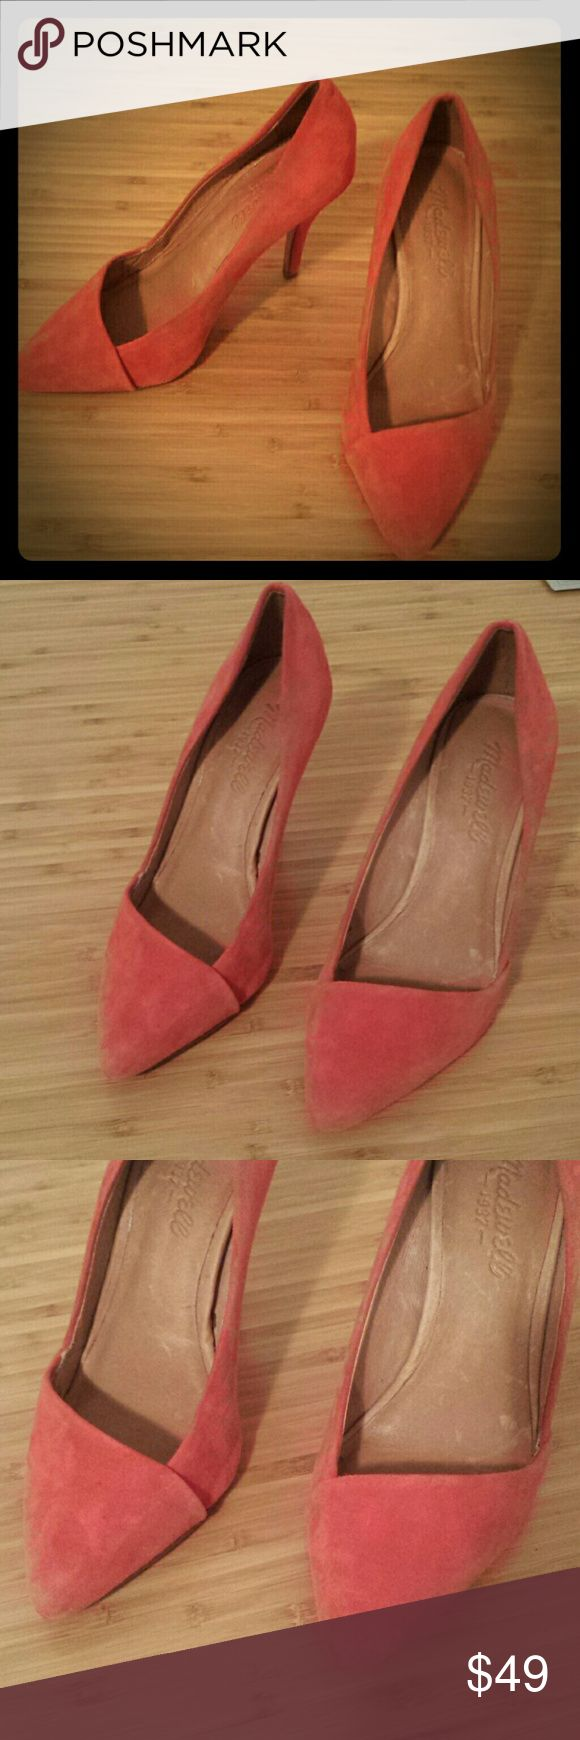 ONE DAY SALE! Madewell mira heels Madewell mira heels. These are gorgeous suede pumps with leather lining. Soles are cushioned and super comfortable. Gorgeous coral, pink color. Great condition. So cute!! Super high quality brand. Retails for $168. Madewell Shoes Heels